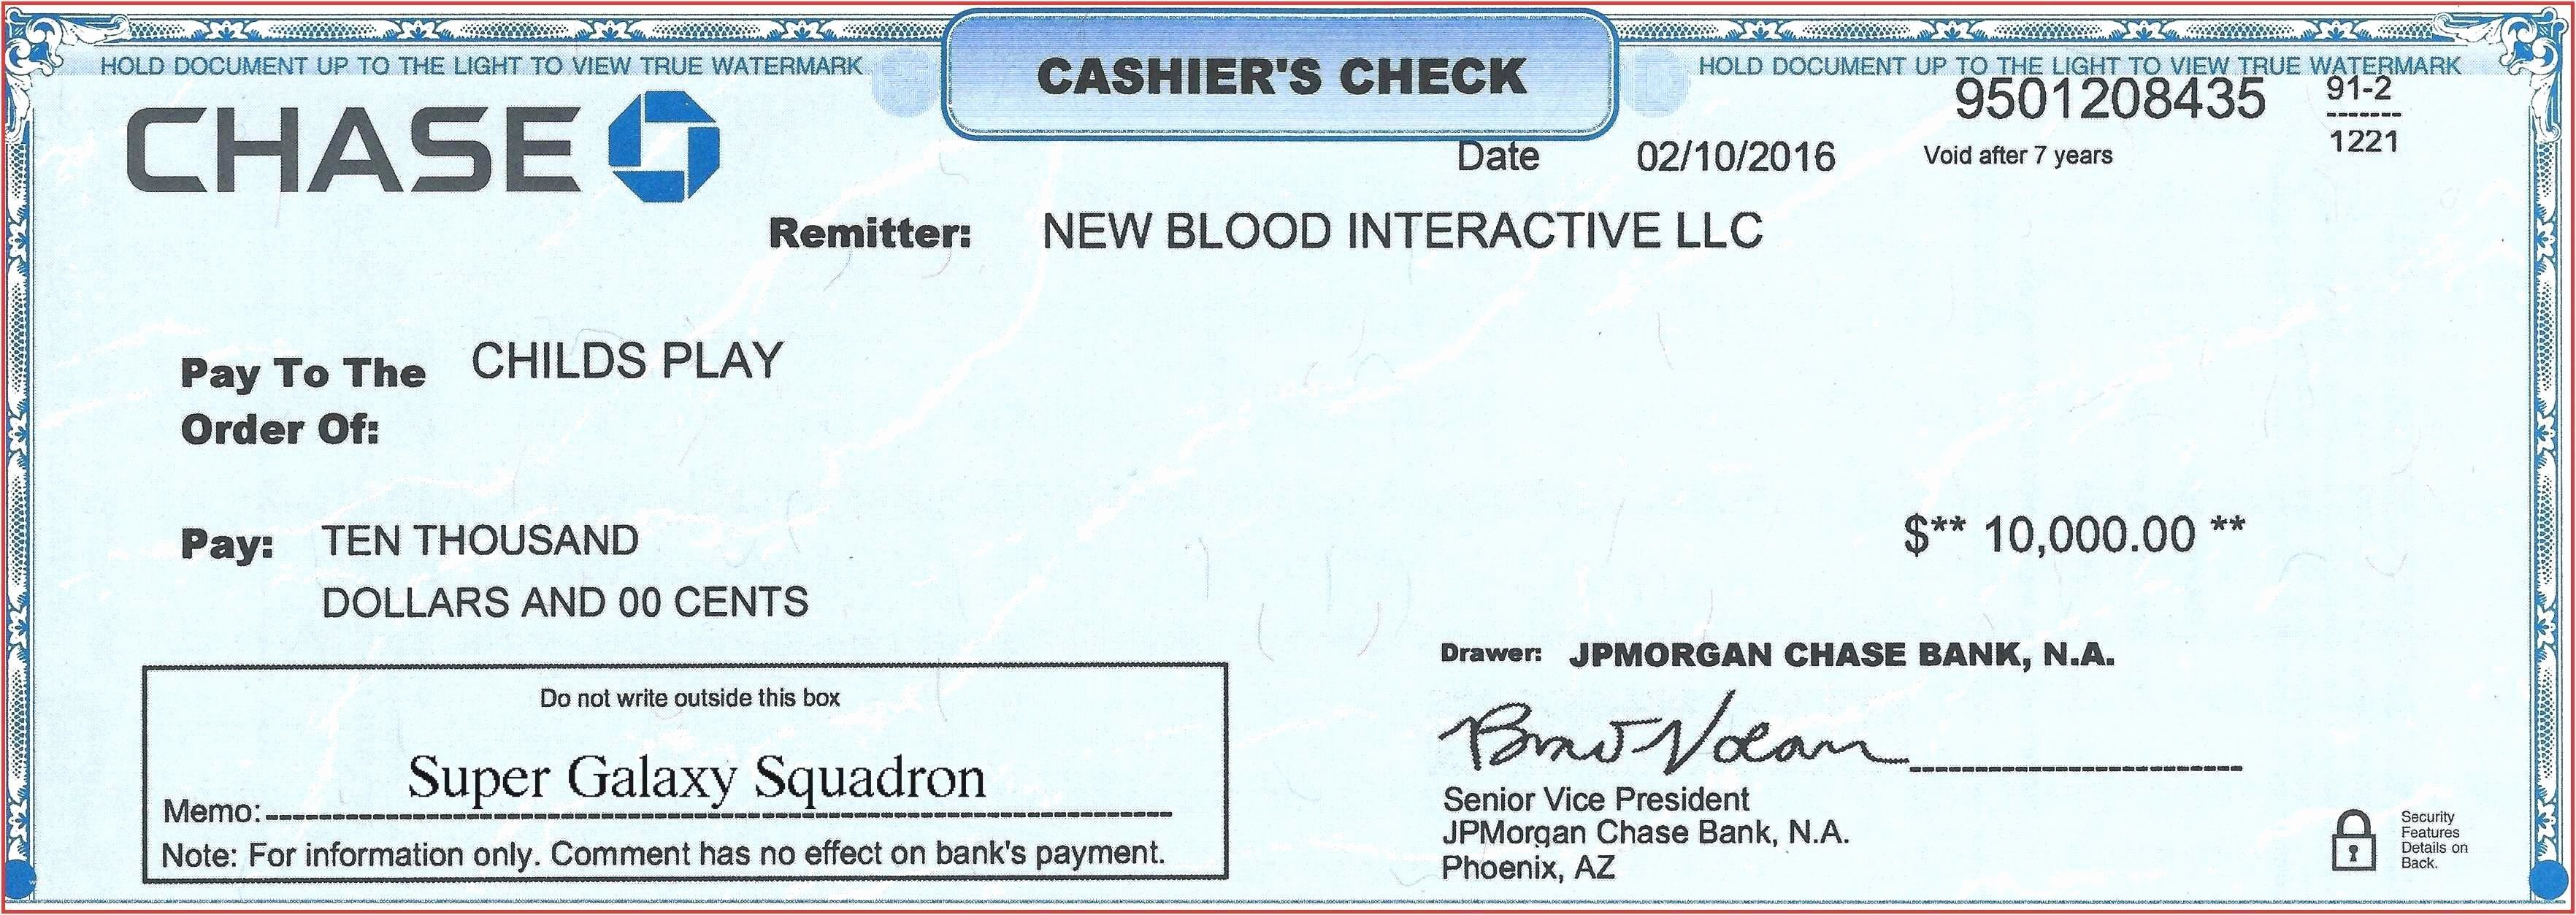 Chase Bank Check Template Inspirational Cashier Check Template Editable Blank Cashiers Pdf Chase